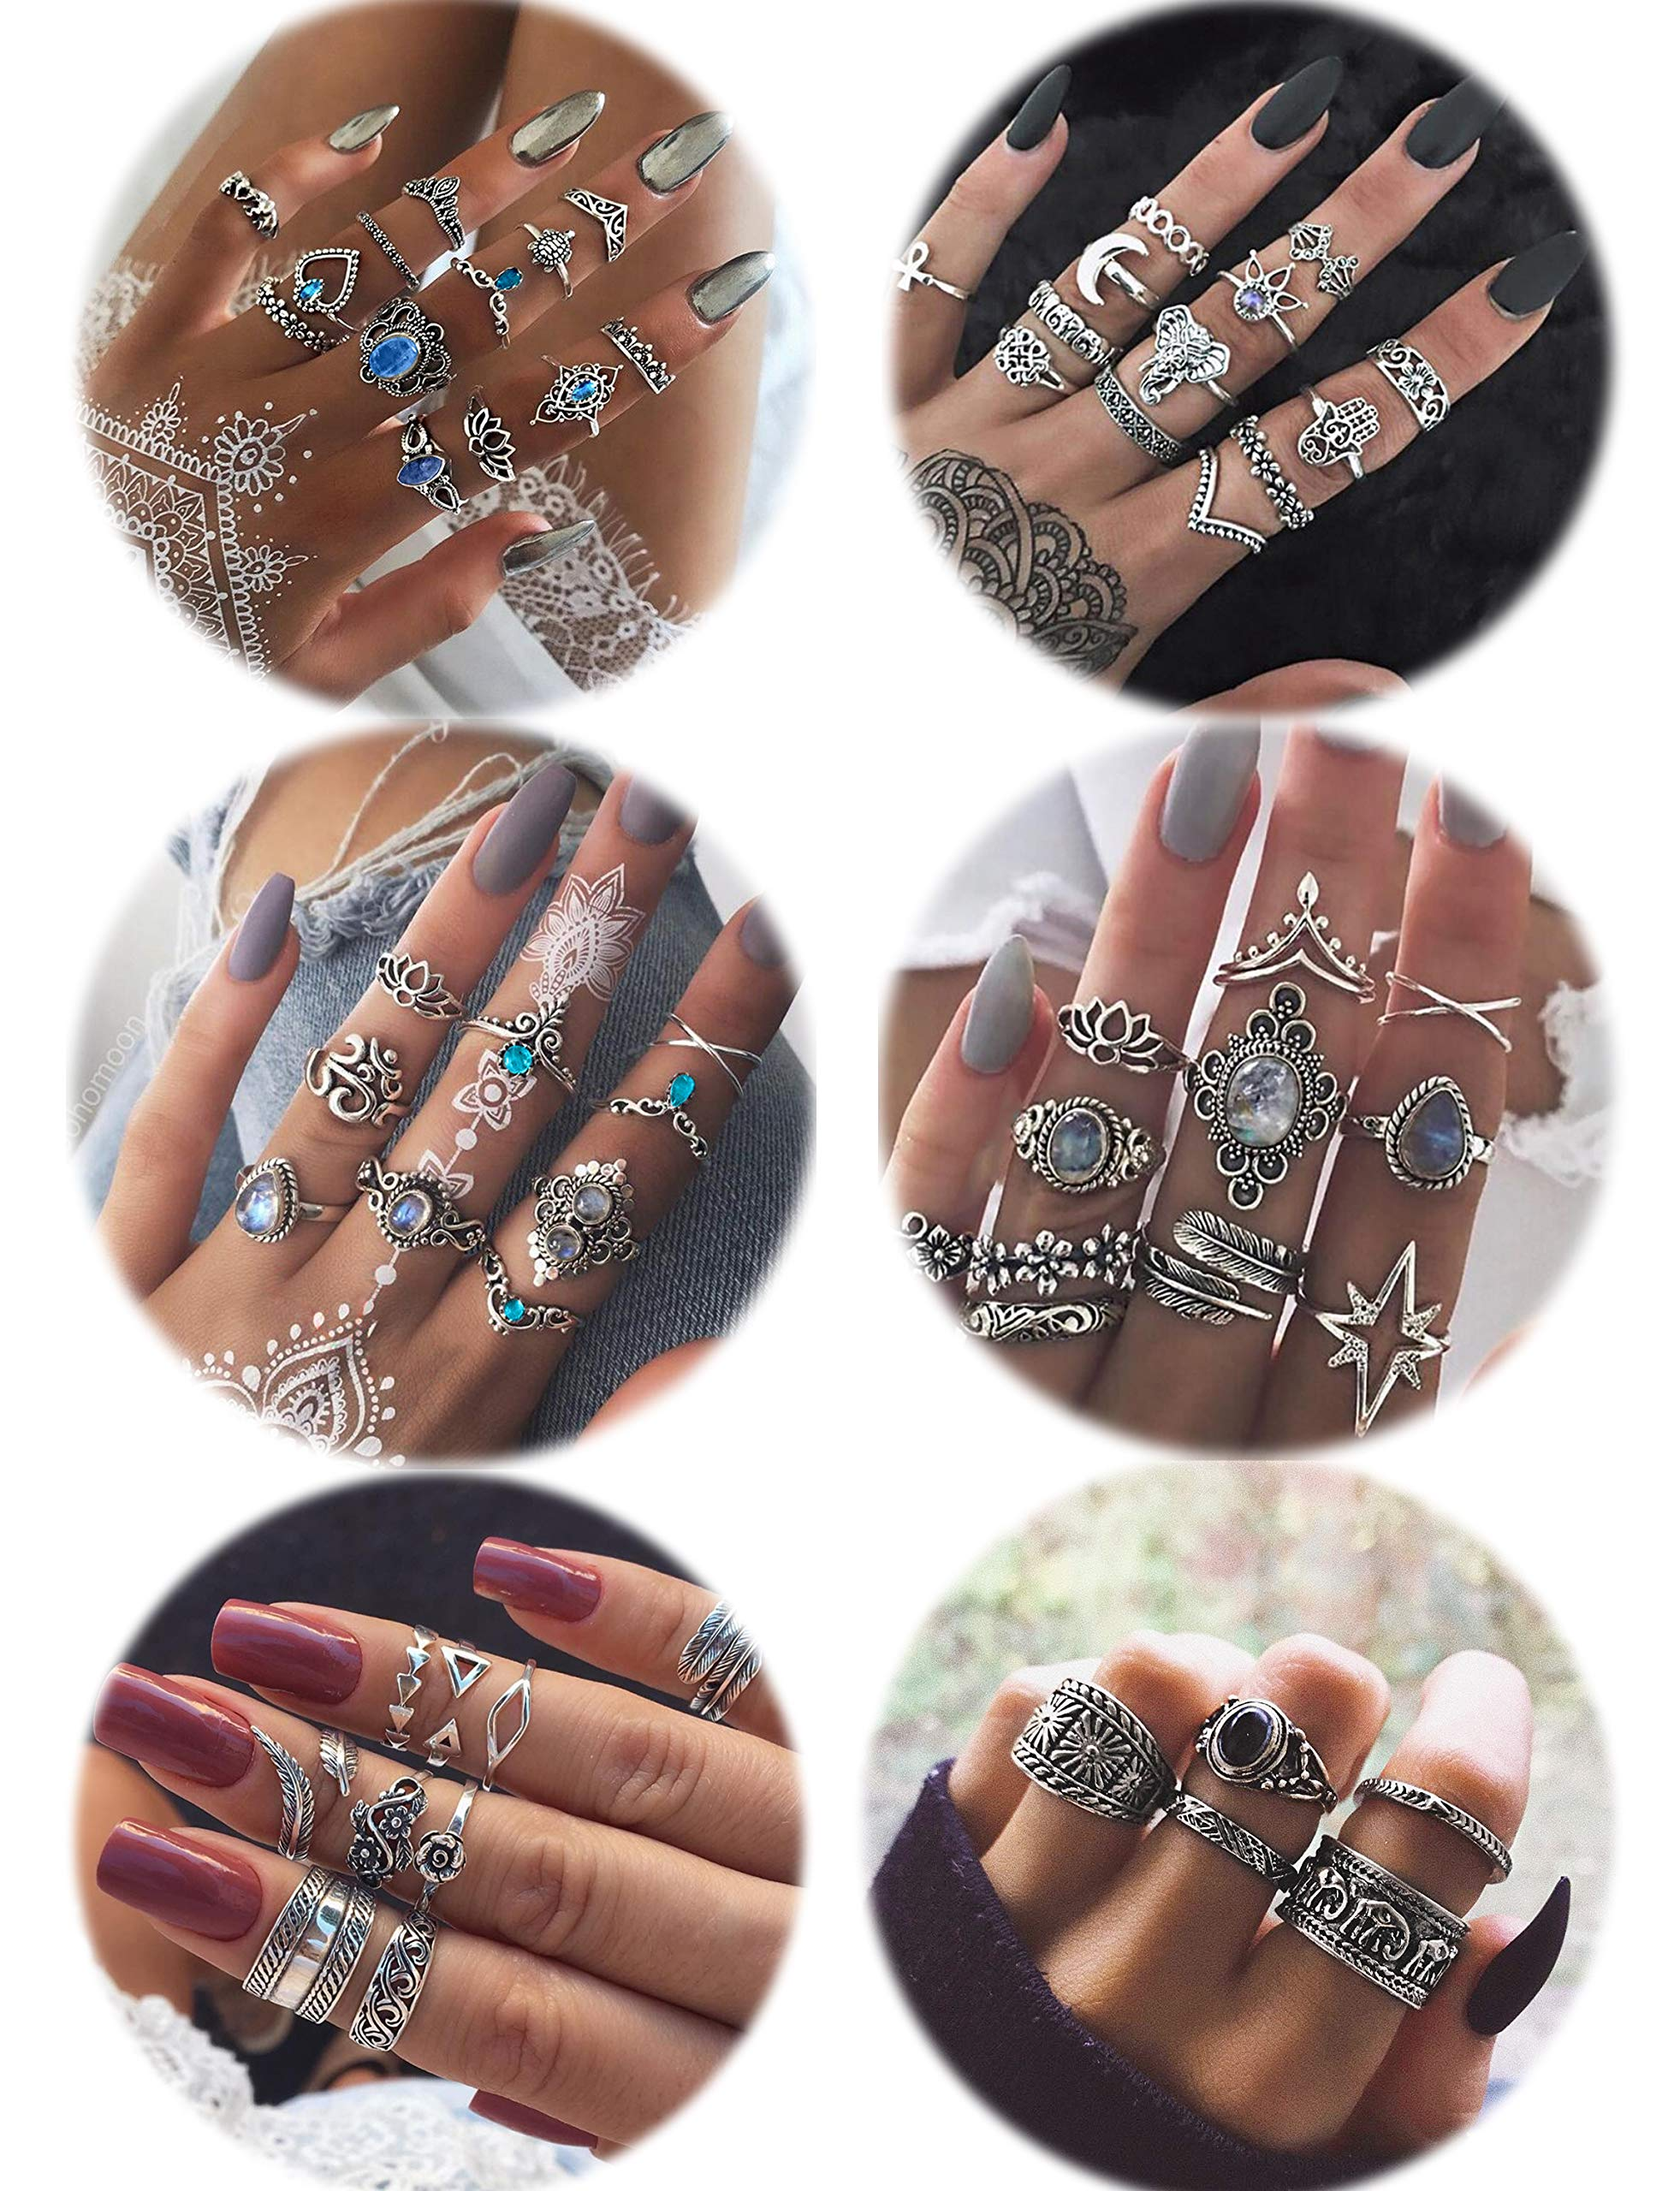 LOLIAS 60 Pcs Vintage Knuckle Ring Set for Women Girls Stackable Rings Set Hollow Carved Flowers